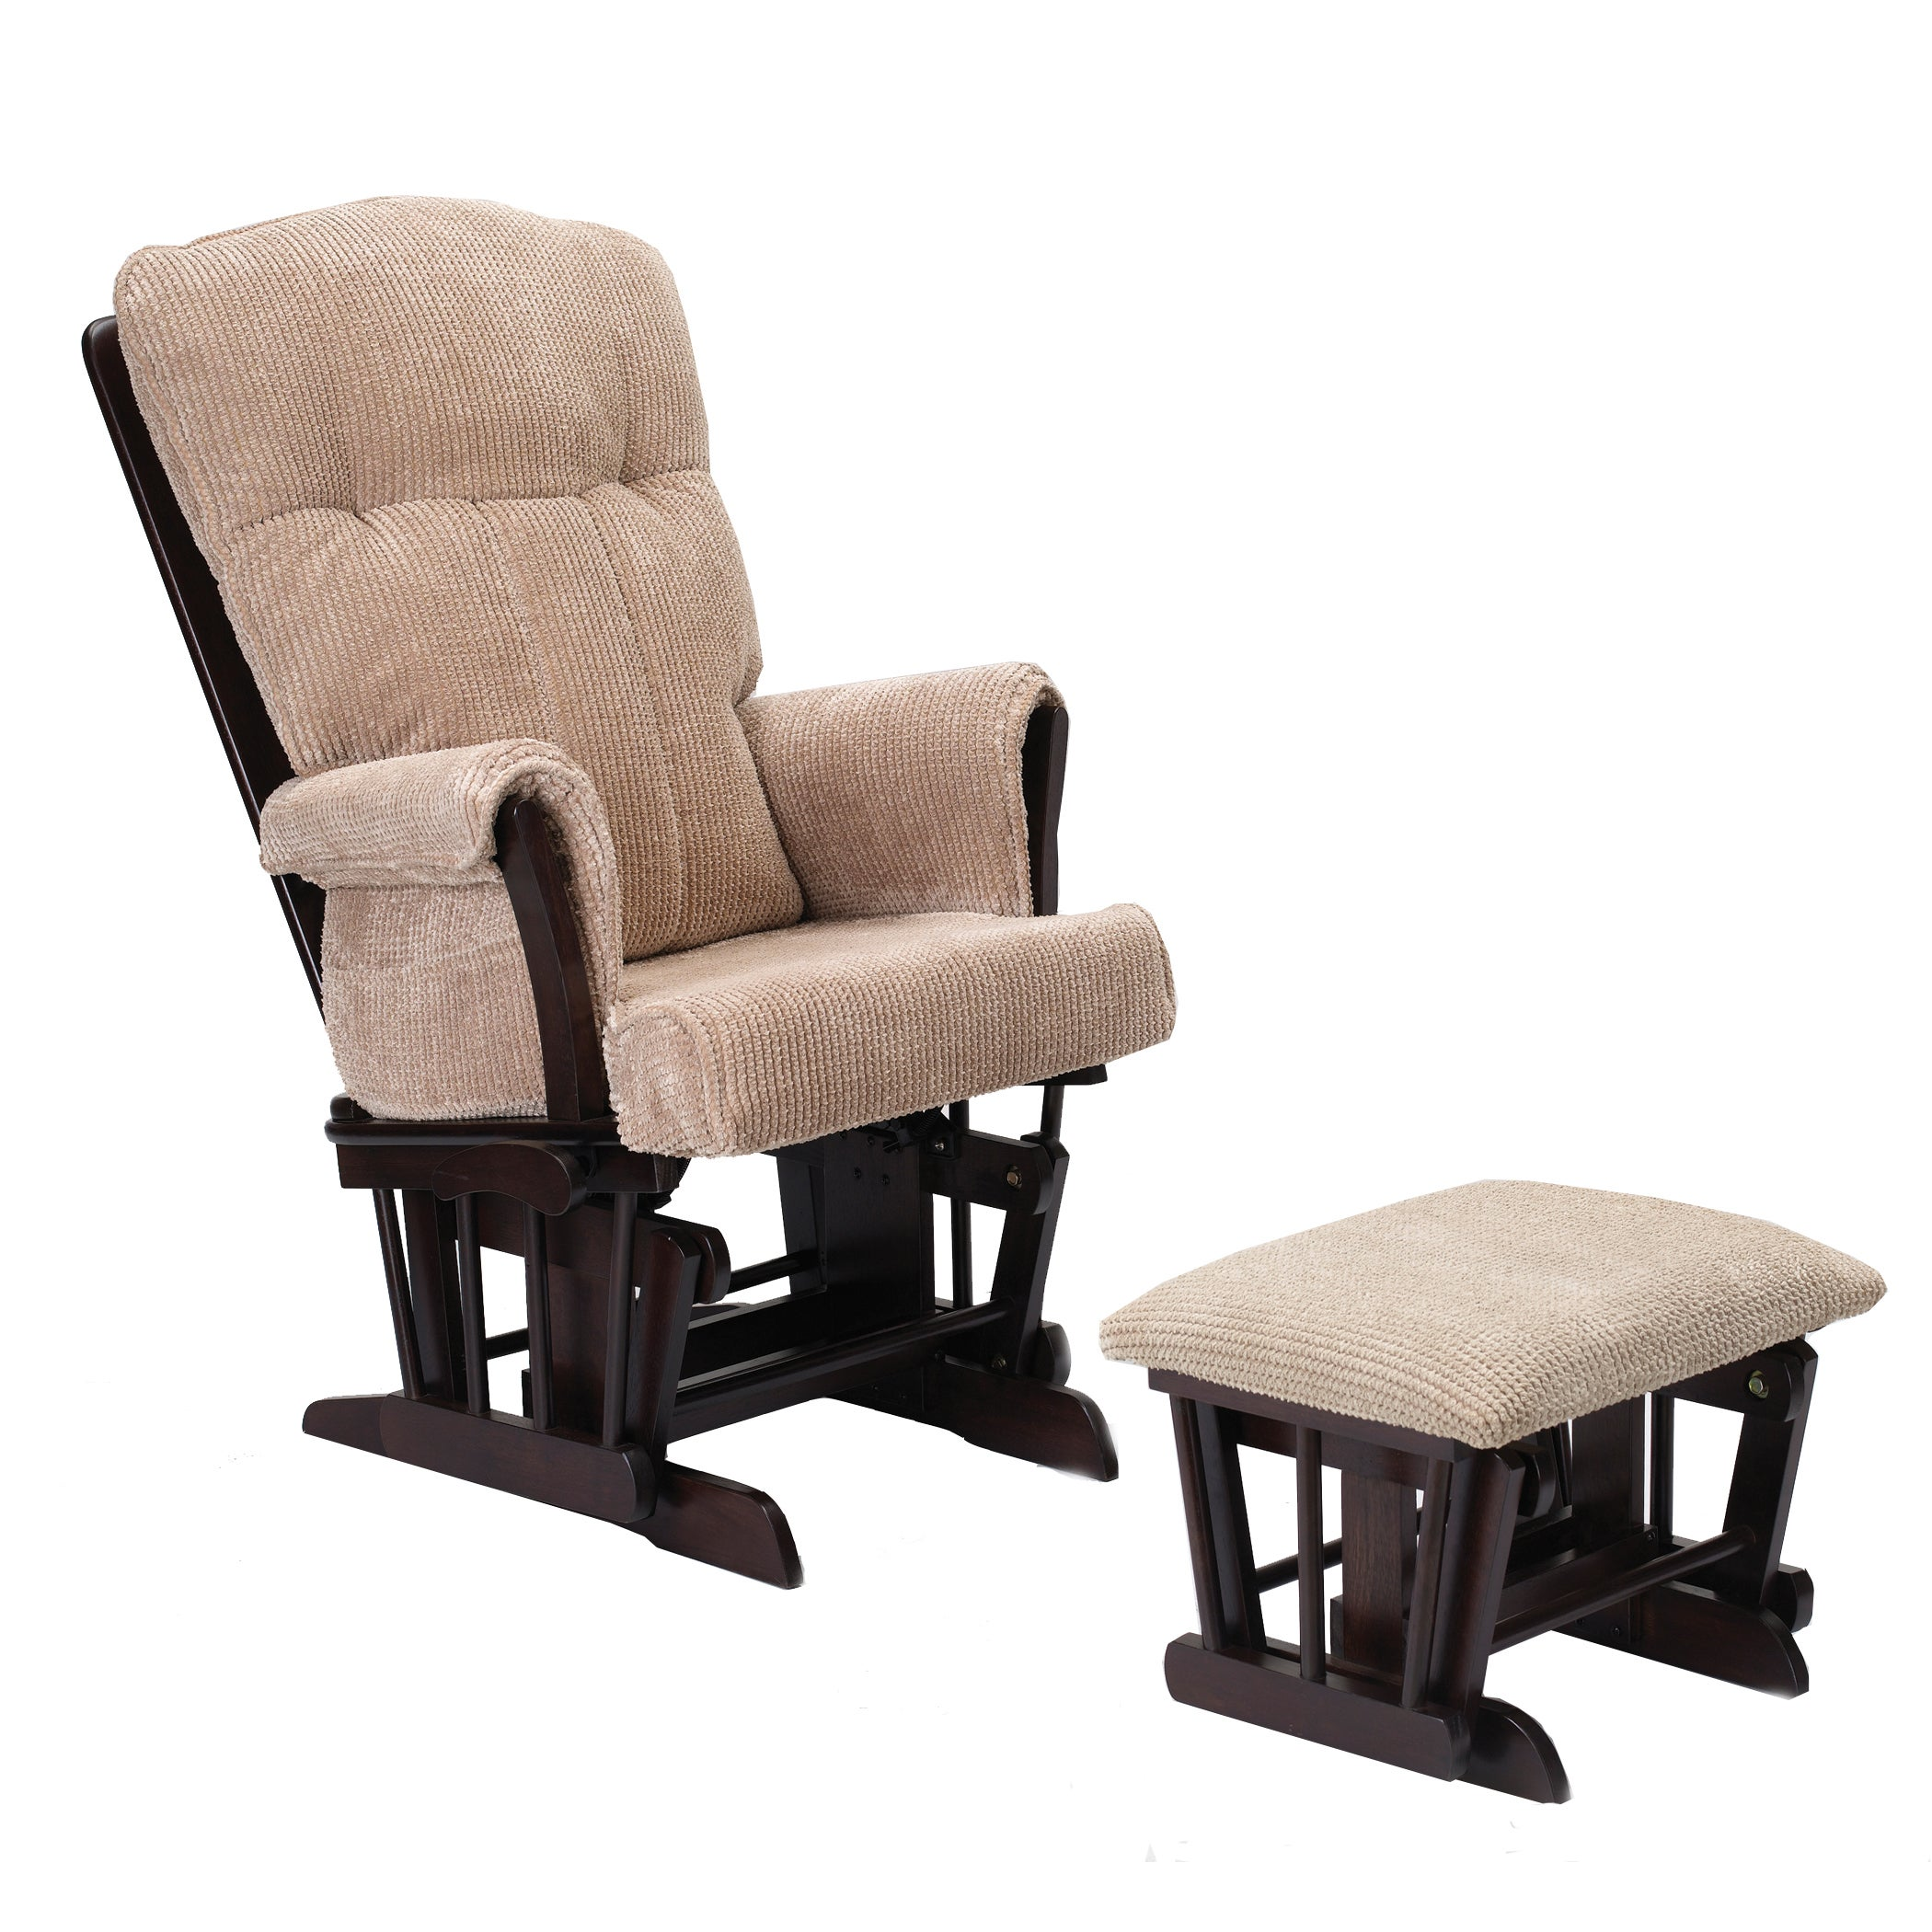 Glider Rocker With Ottoman Free Shipping Today